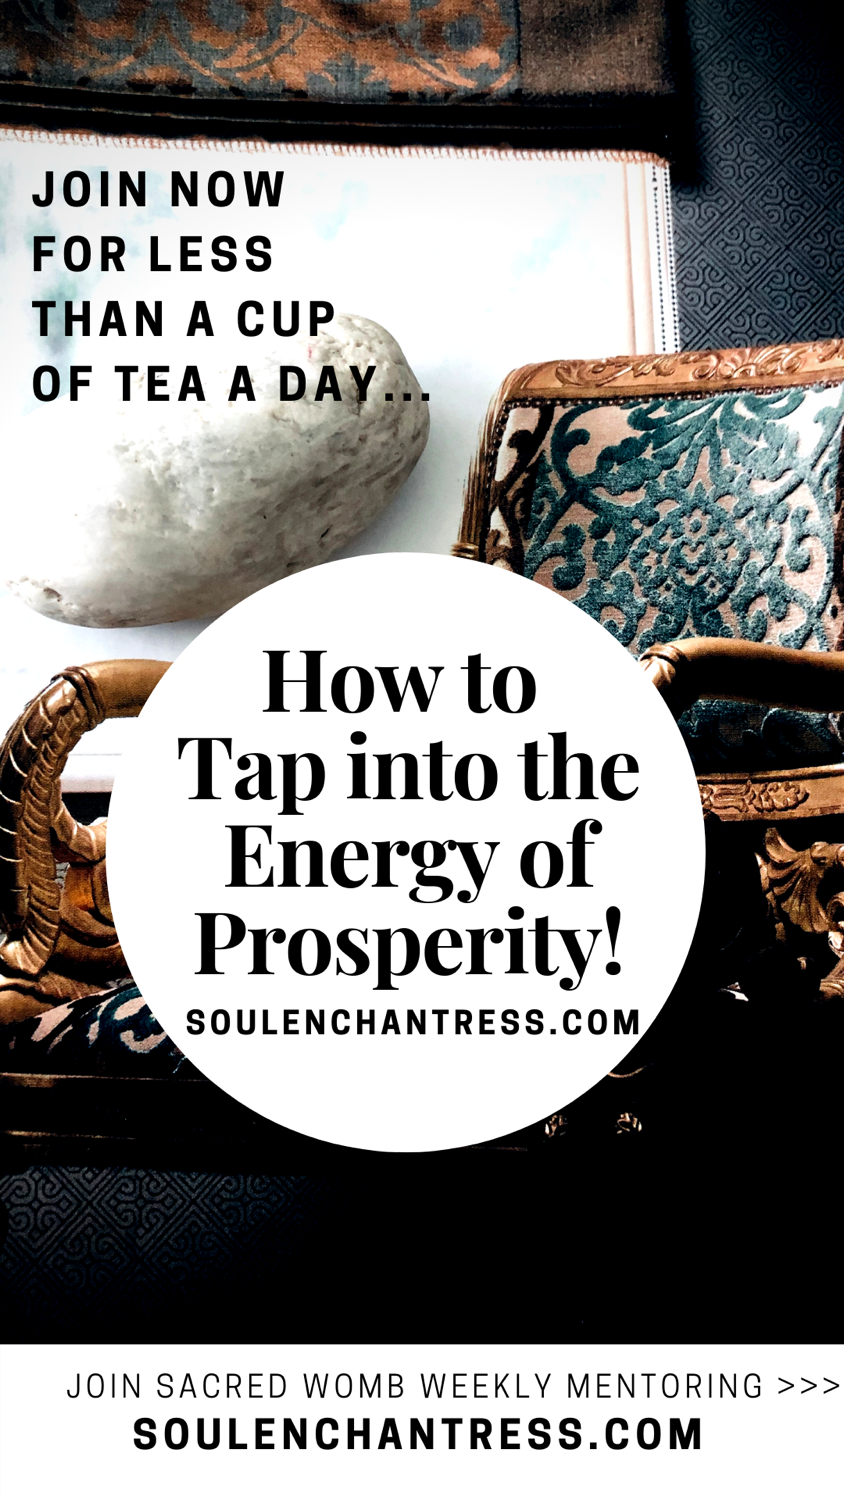 how to become prosperous, how to tap into prosperity, soul enchantress, introvert entrepreneur